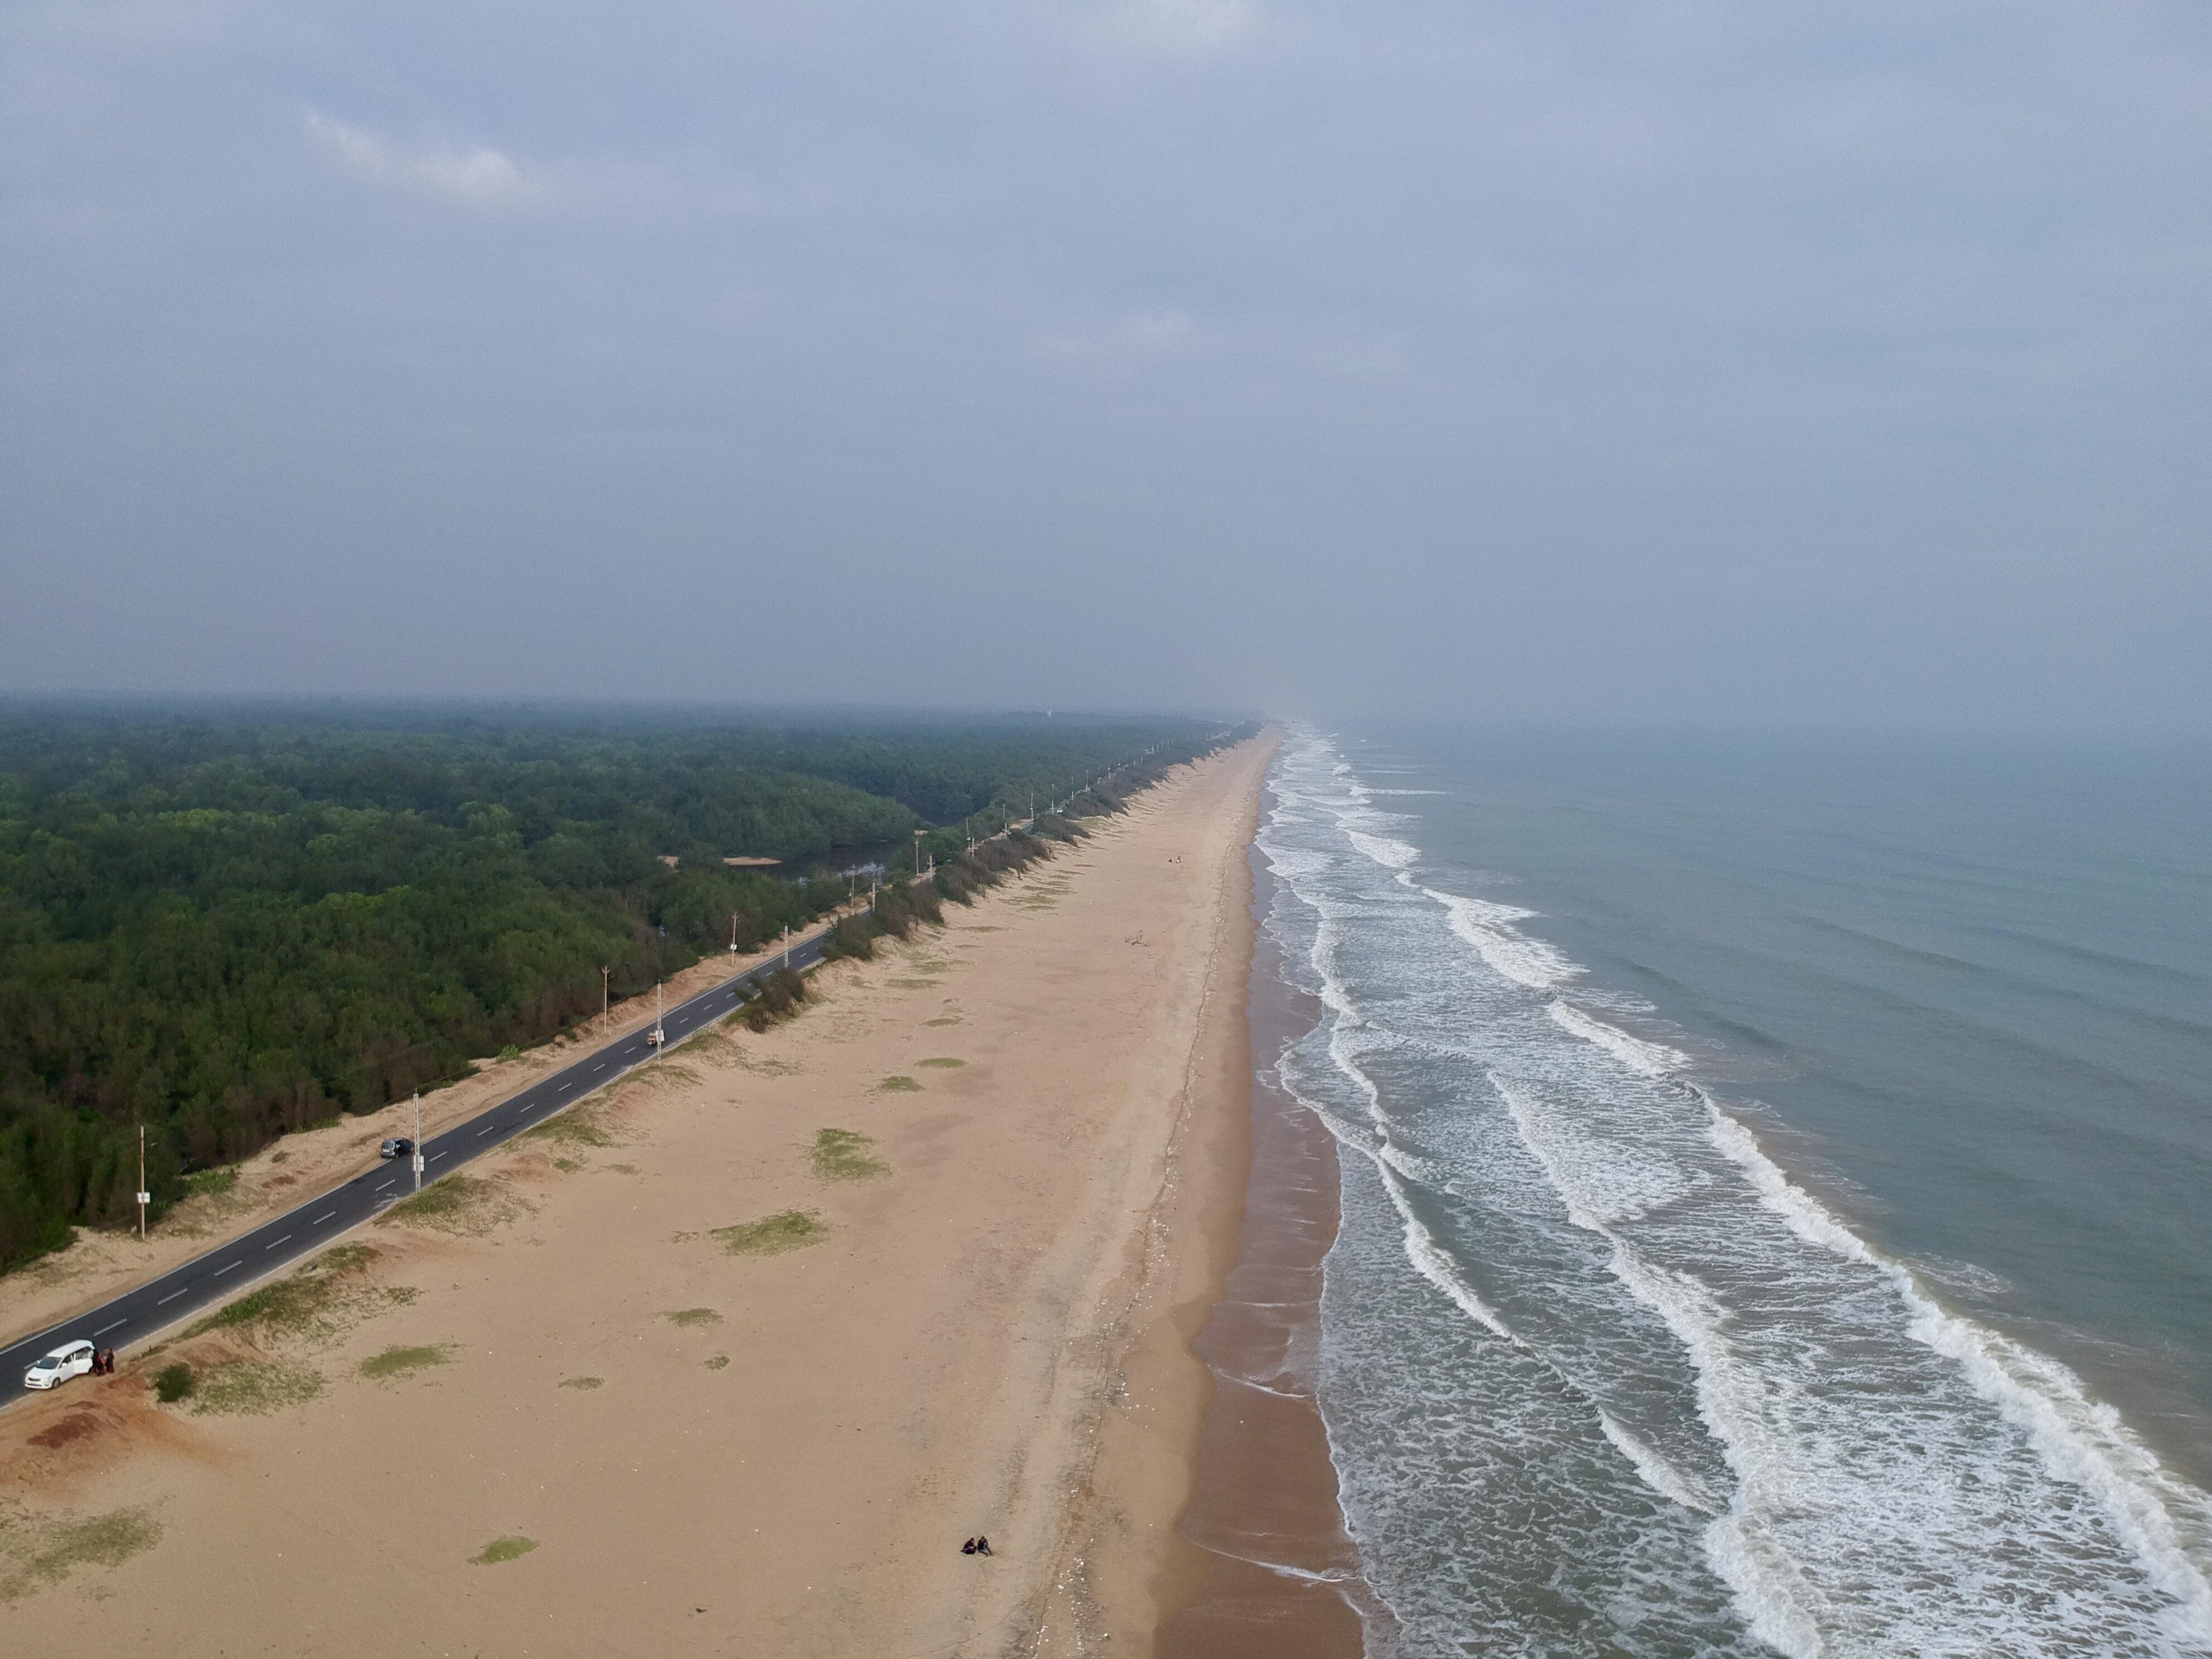 Konark Marine Drive seen through a drine